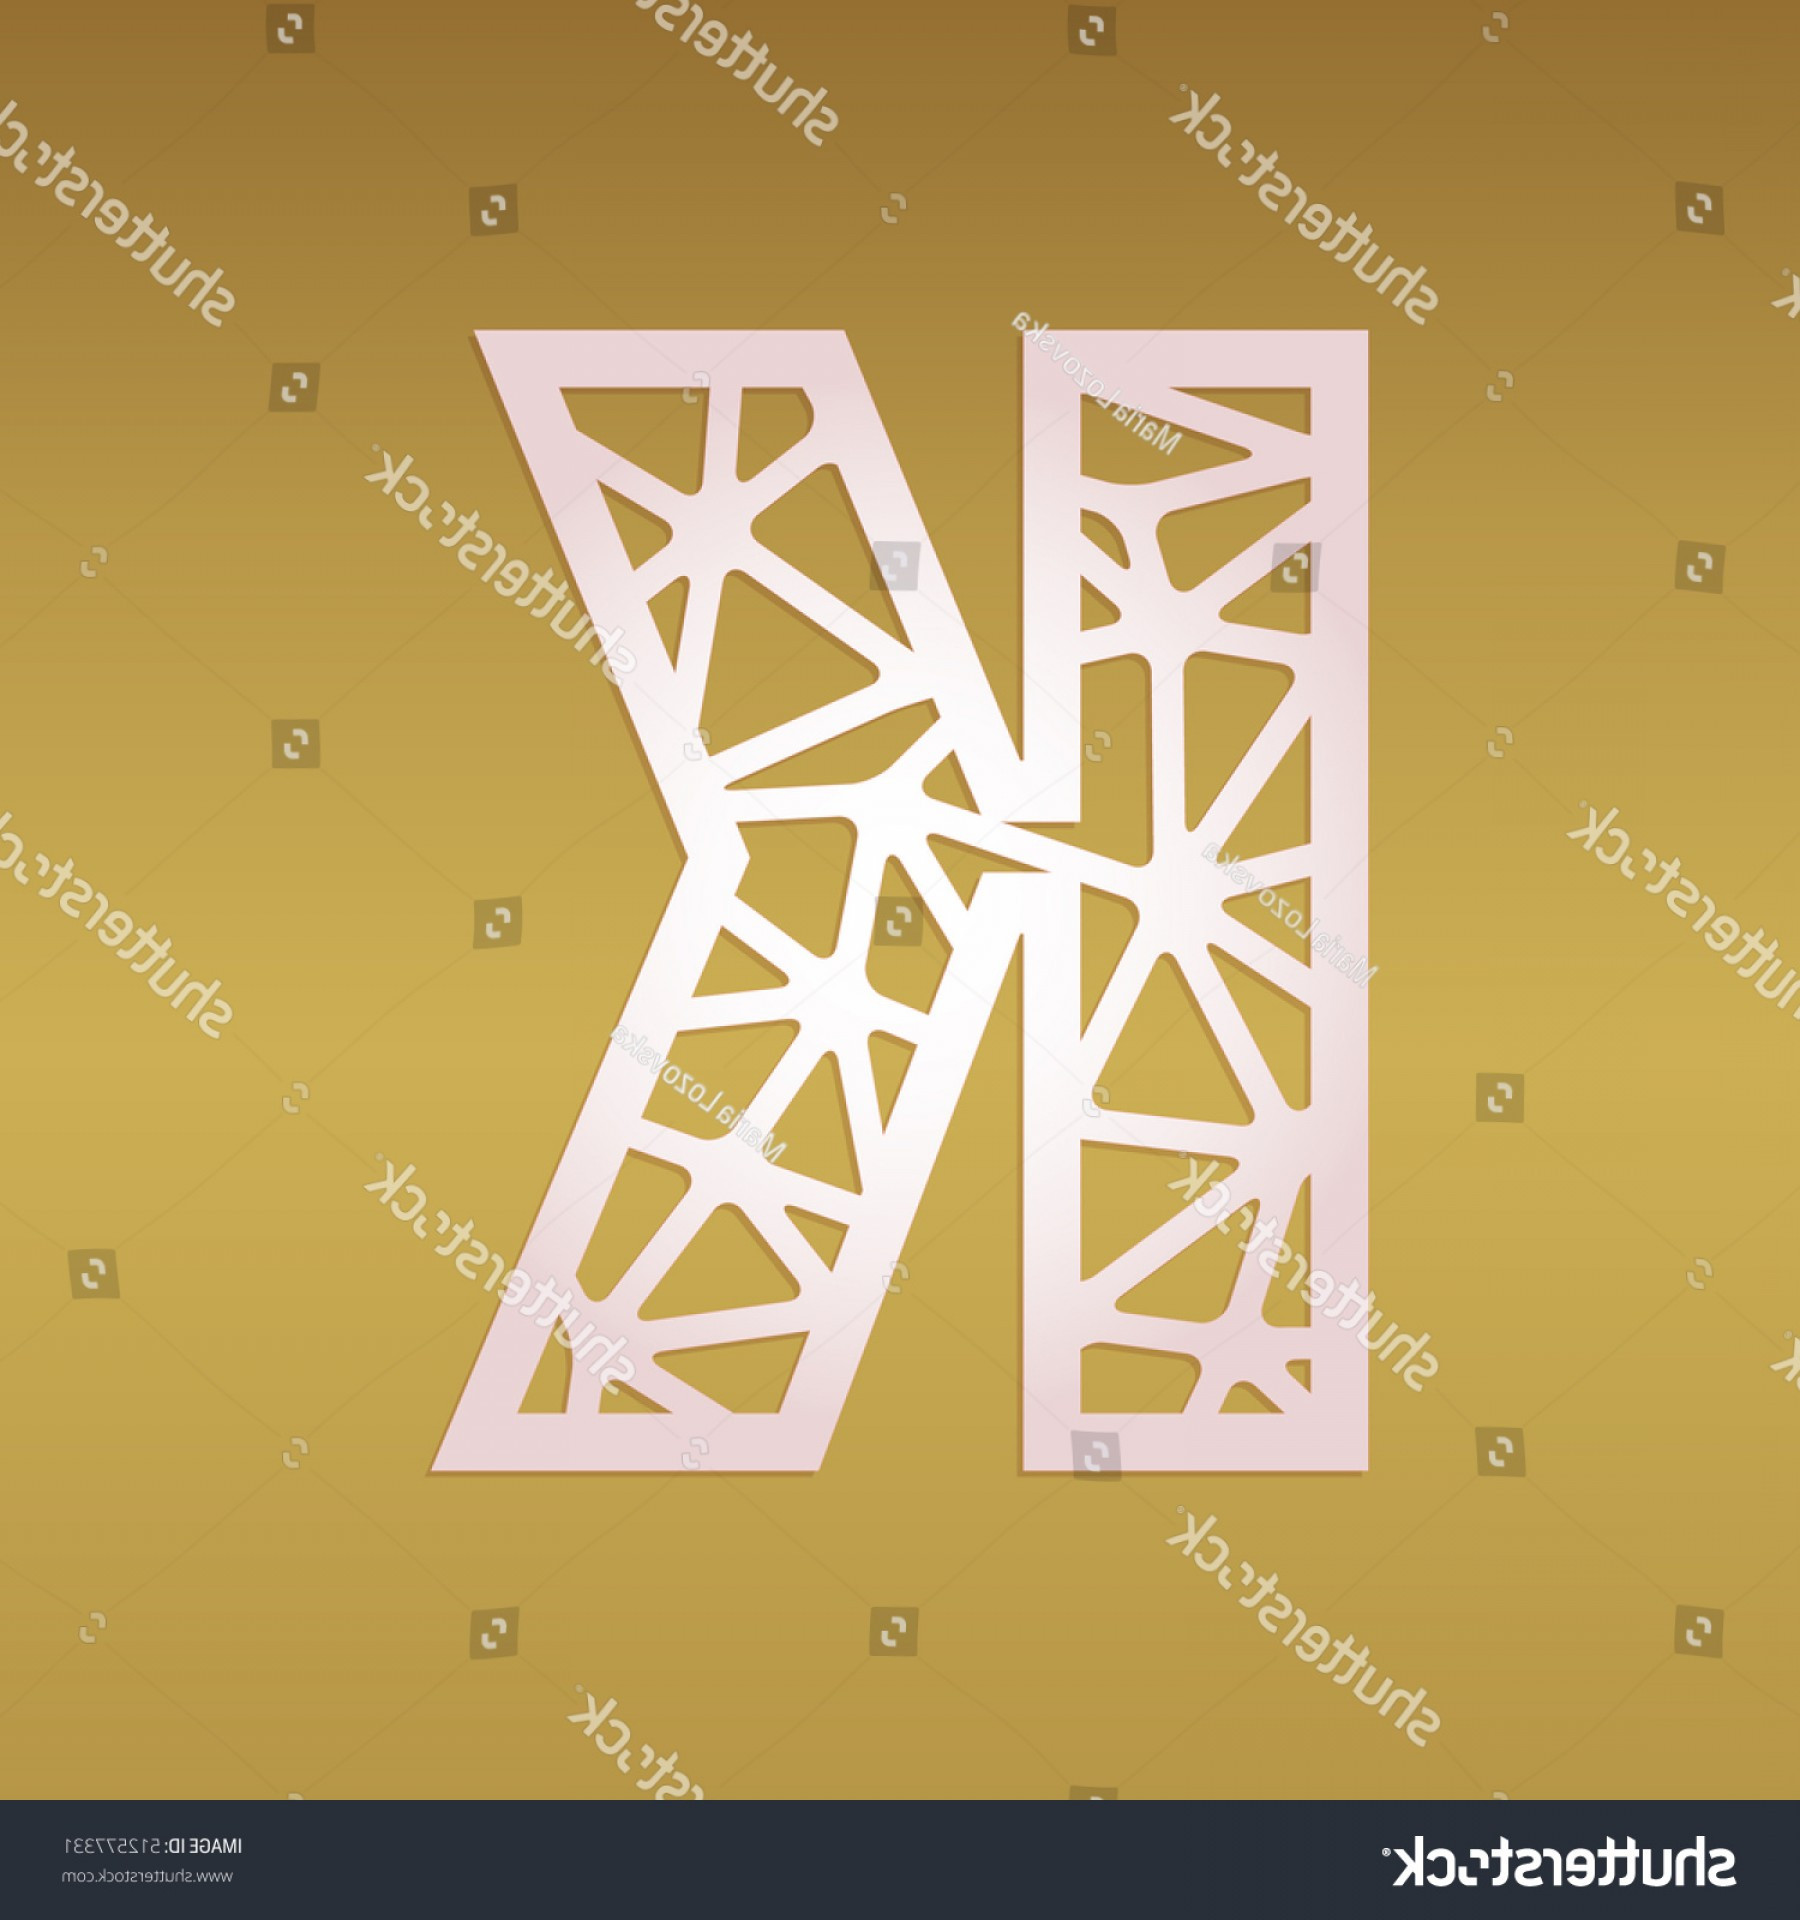 Looking For A Laser That Can Be Cut Using Files Vector: Digital Vector File Laser Cutting Geometrical